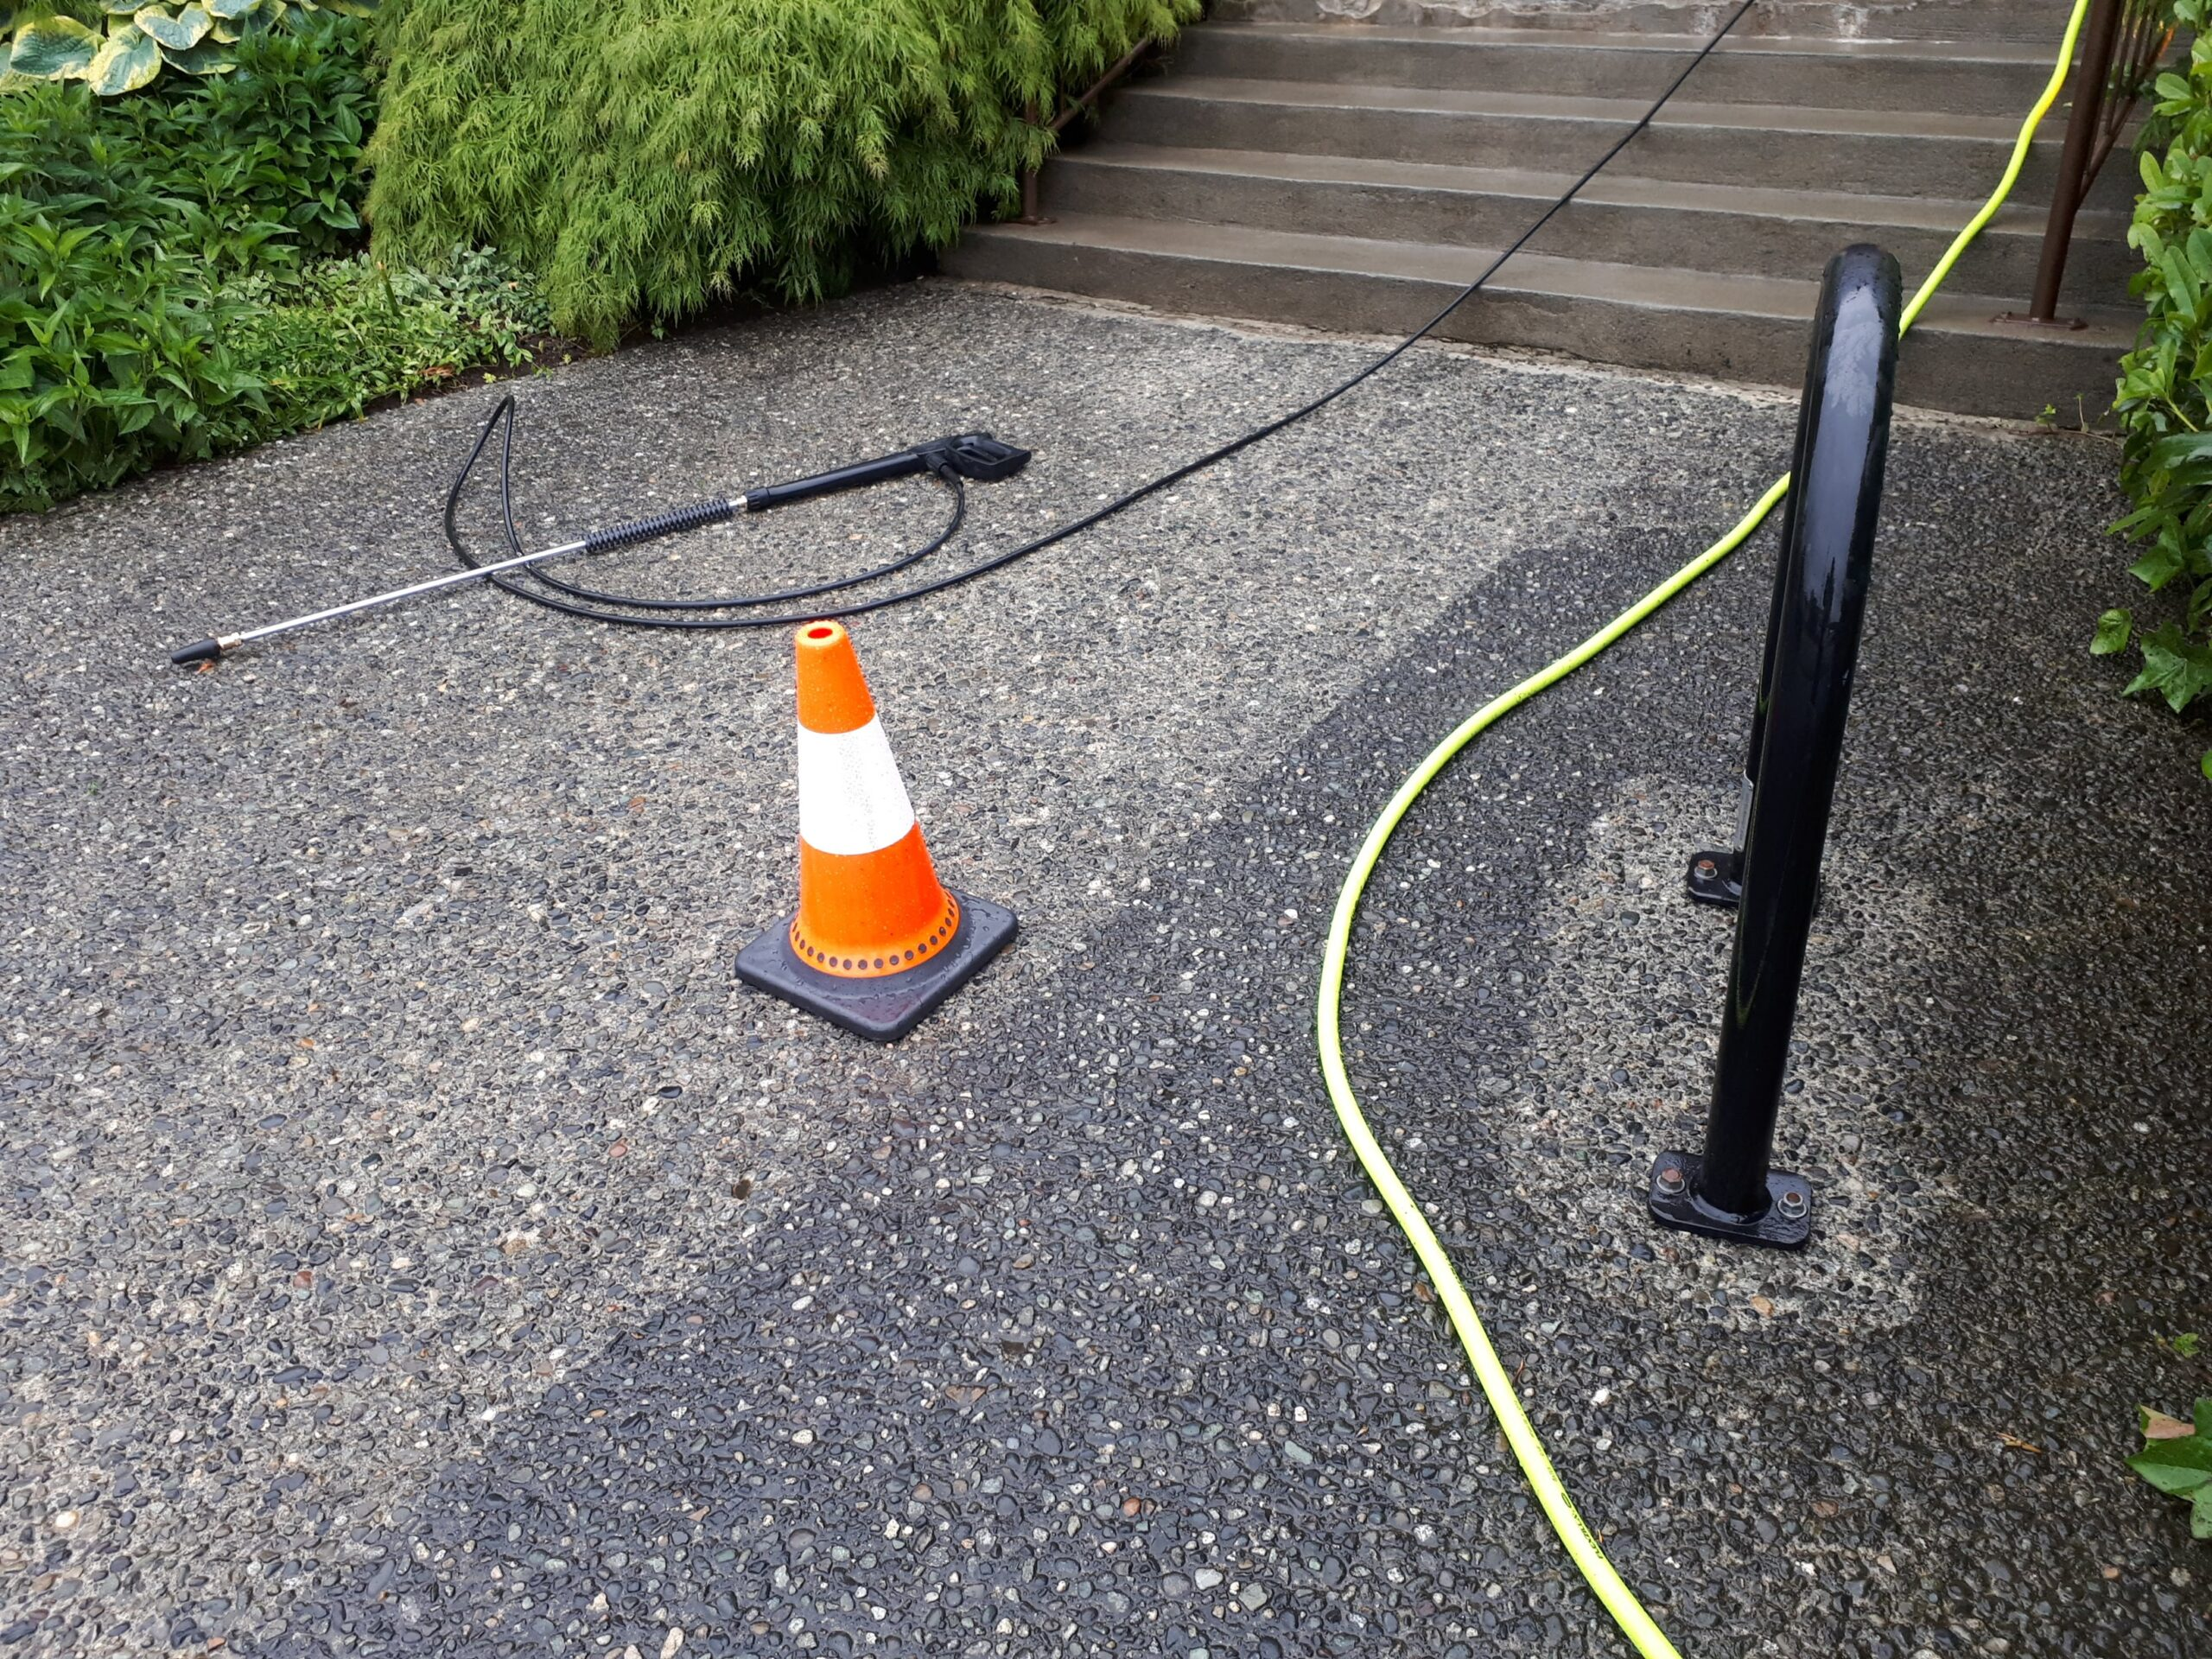 power washing safety precautions when cleaning aggregate on commercial property in vancouver